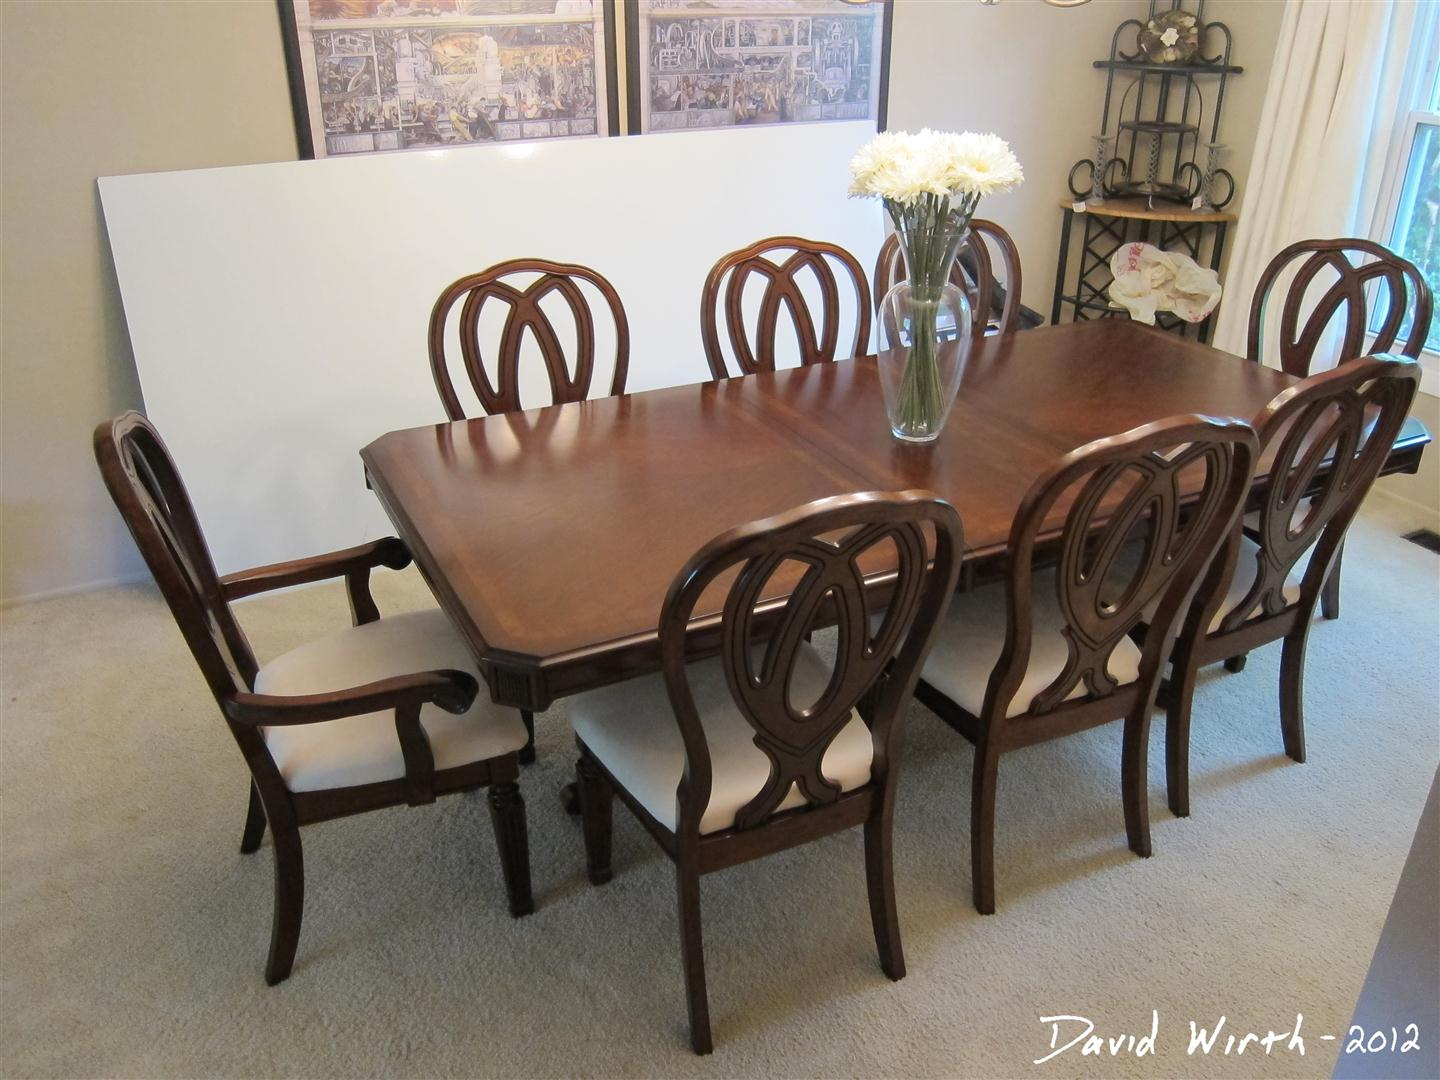 Dining Room Table And Chairs Set, Recovered Chairs Fabric, Wood Table, Sturdy  Chairs